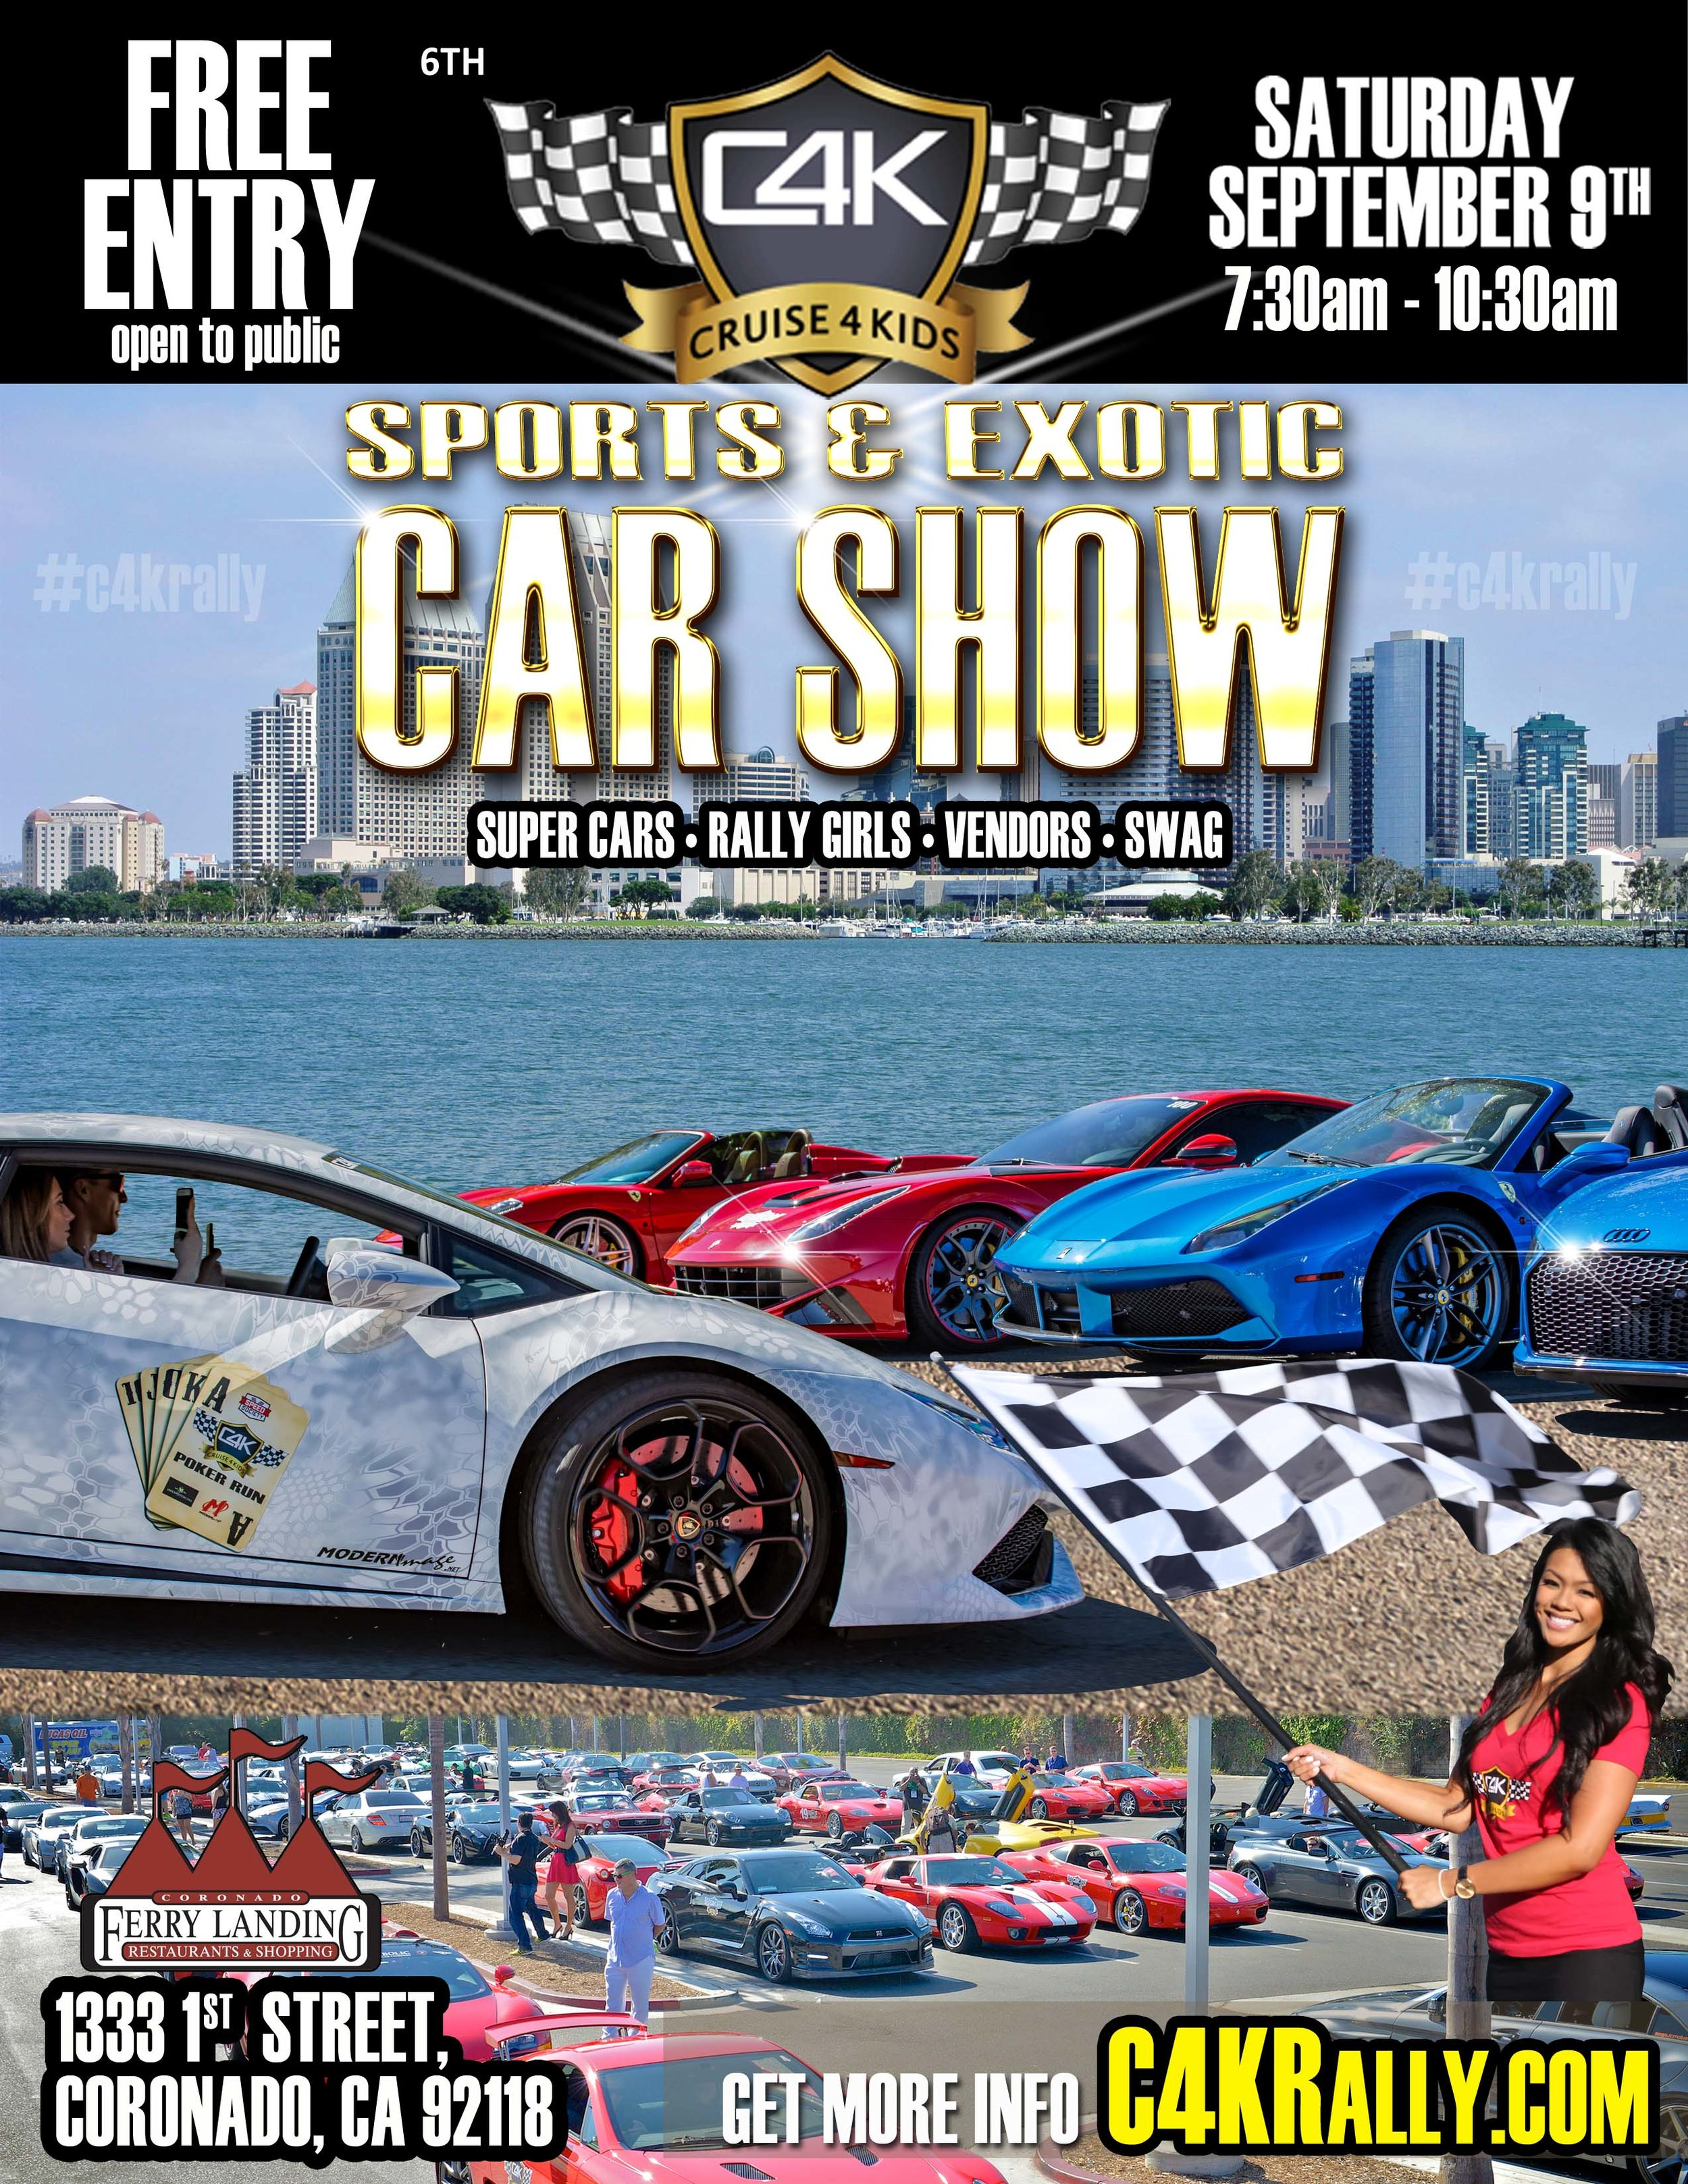 CAR EVENTS CRUISE KIDS - Car show promotional items